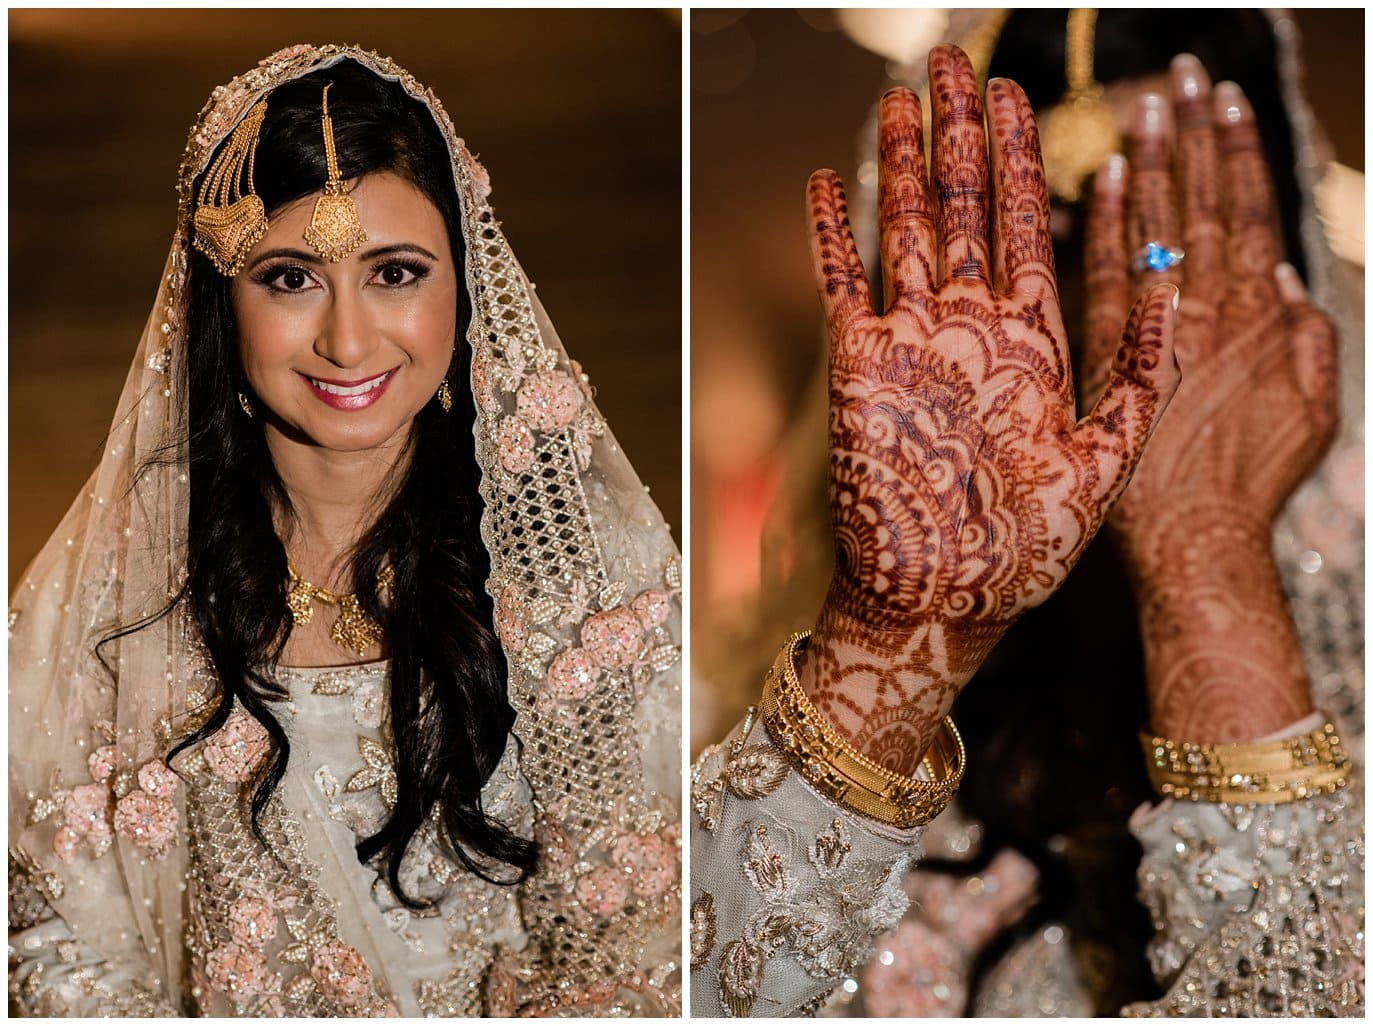 bride in duppata and customized henna Denver Nikah Ceremony photo